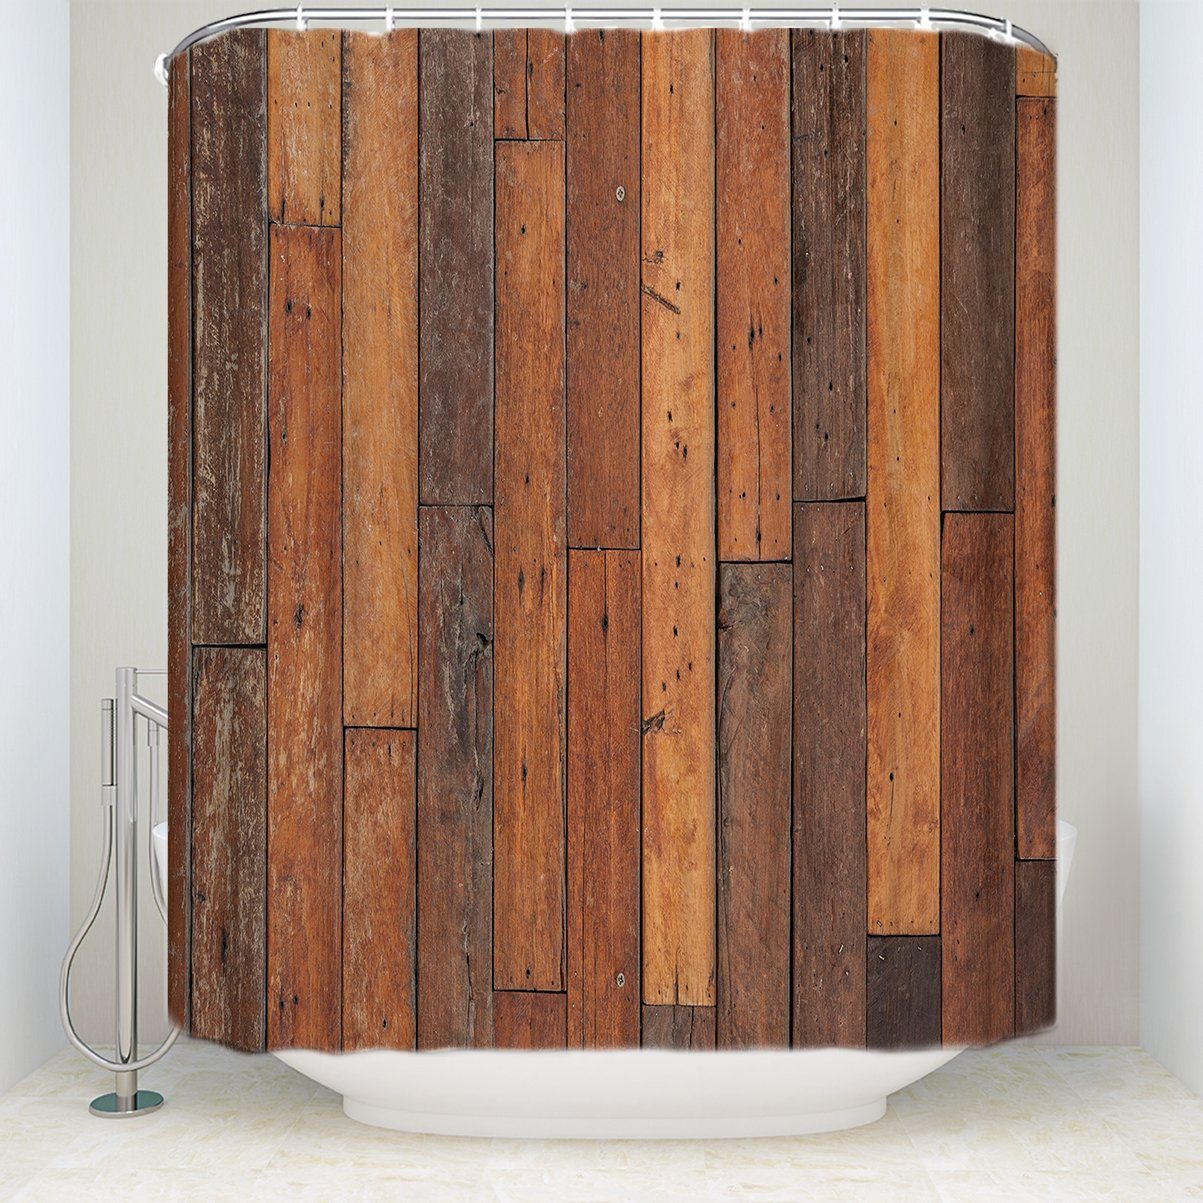 Antique Theme Shower Curtains Rustic Country Barn Wood Bath Shower Curtain Waterproof Polyester Fabric Bathroom Accessories Sets with Hooks 72x84Inches